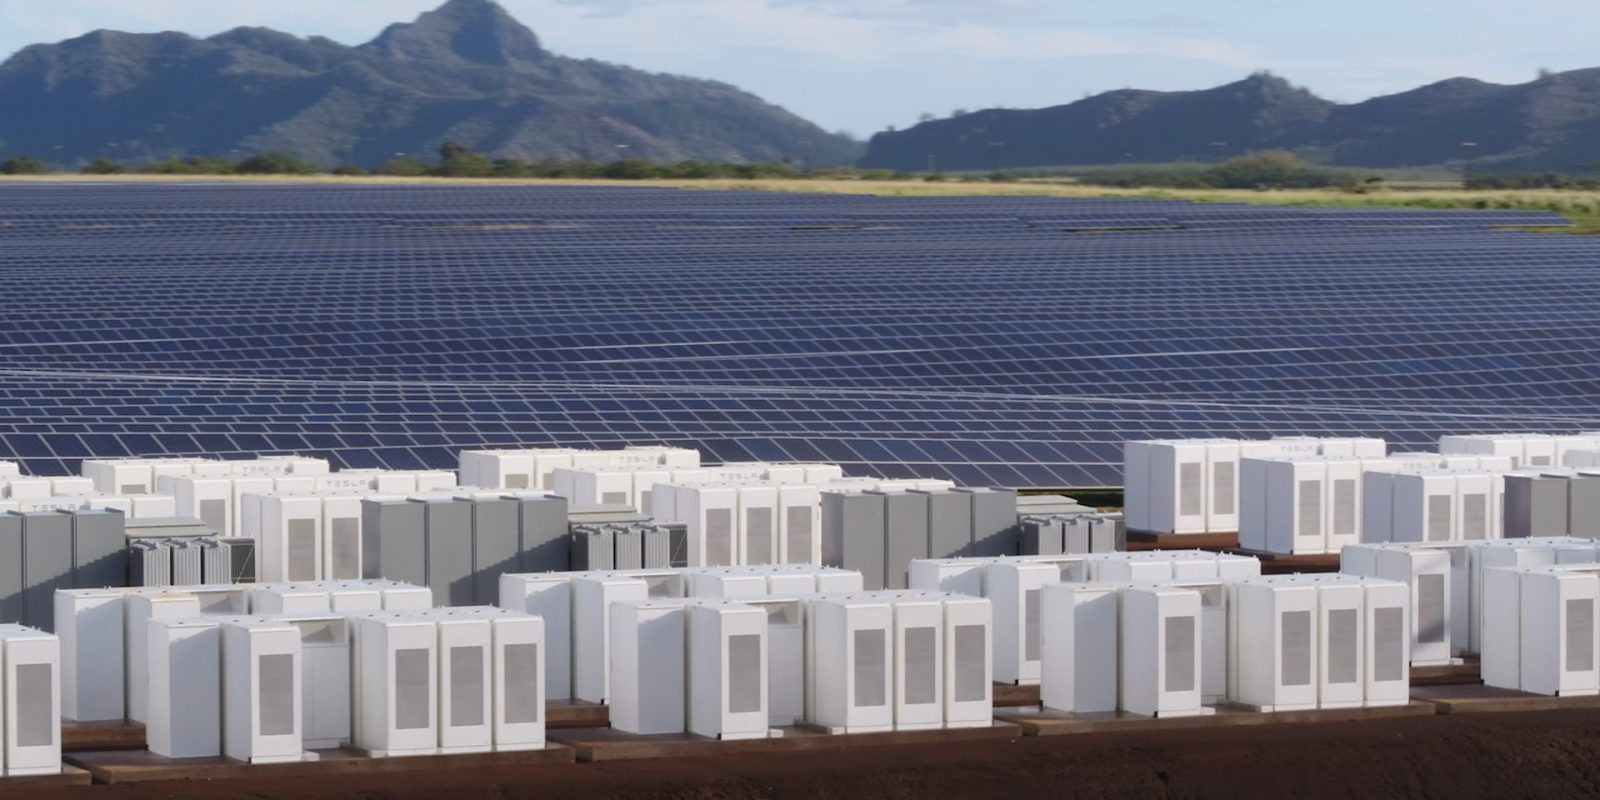 Tesla partners with agribusiness Limoneira to add batteries to their solar projects